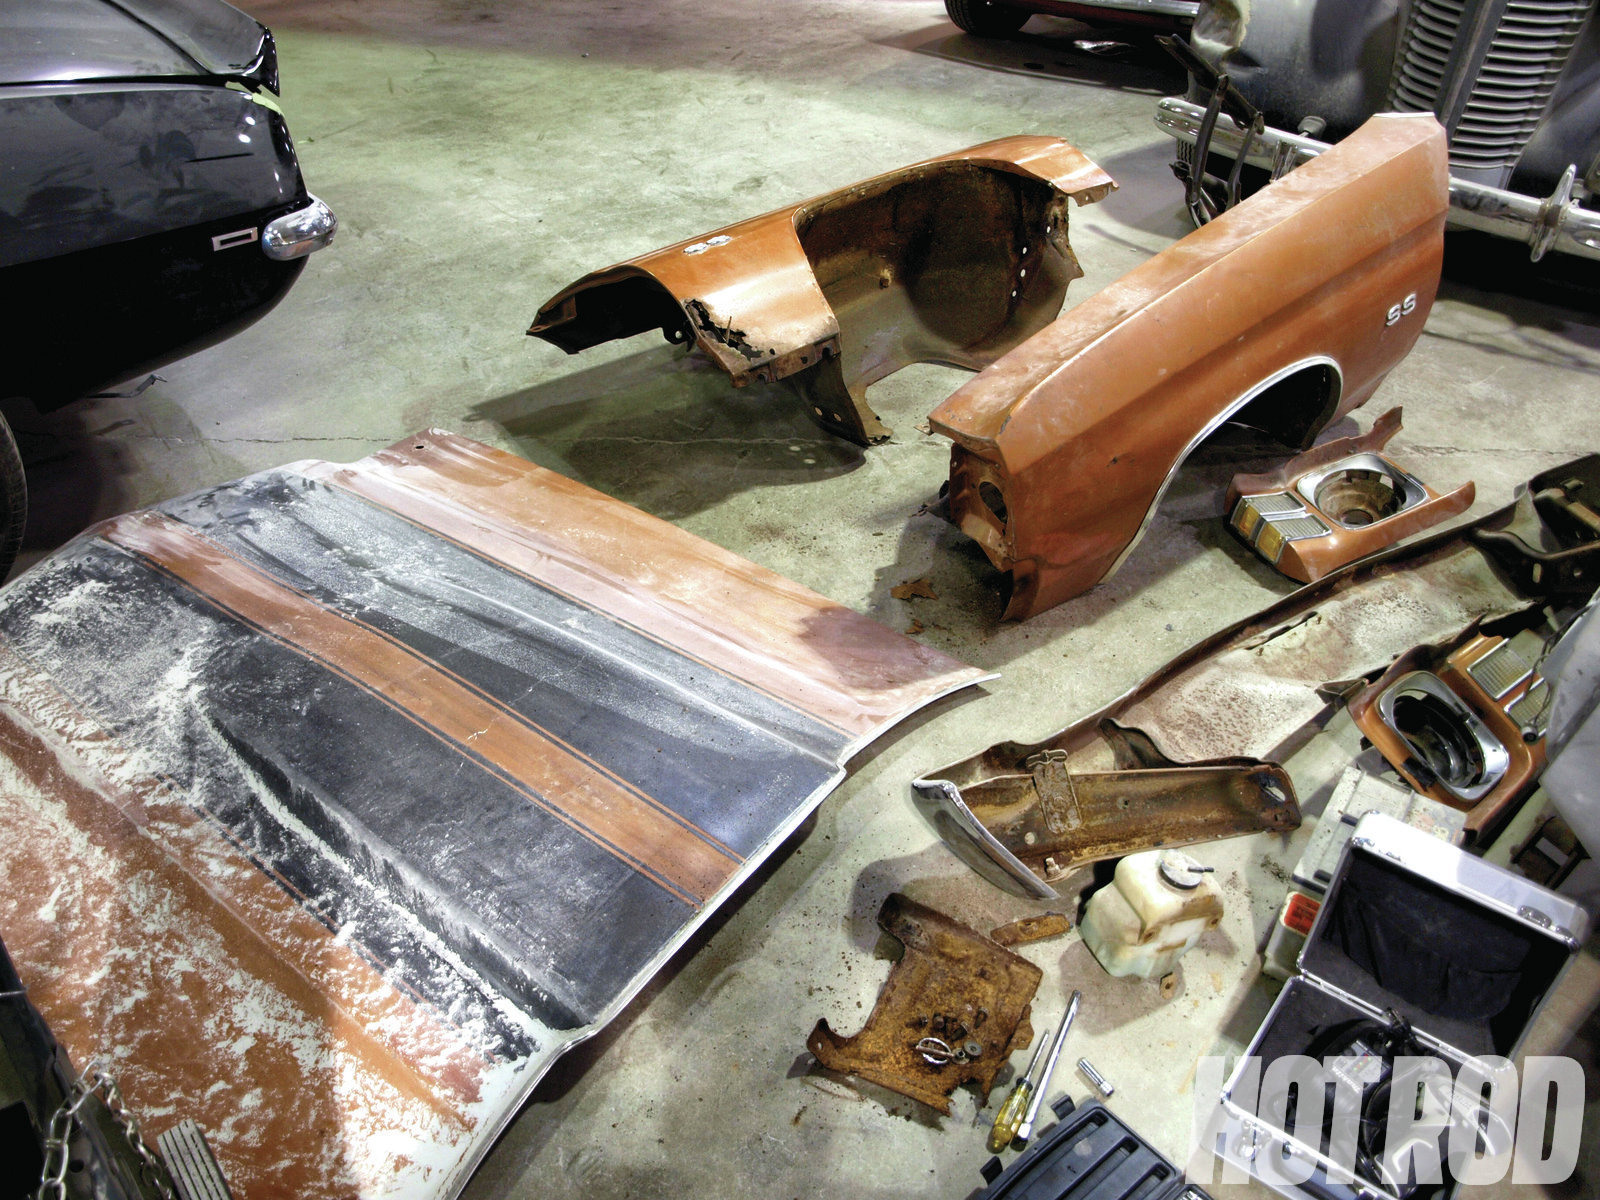 Upon dissembling the body panels to assess the extent of the rot, the hood, fenders, trunklid, doors, and quarter-panels were deemed unsalvageable. The cowl, floorboard, and trunk floor had sustained severe rust damage as well.